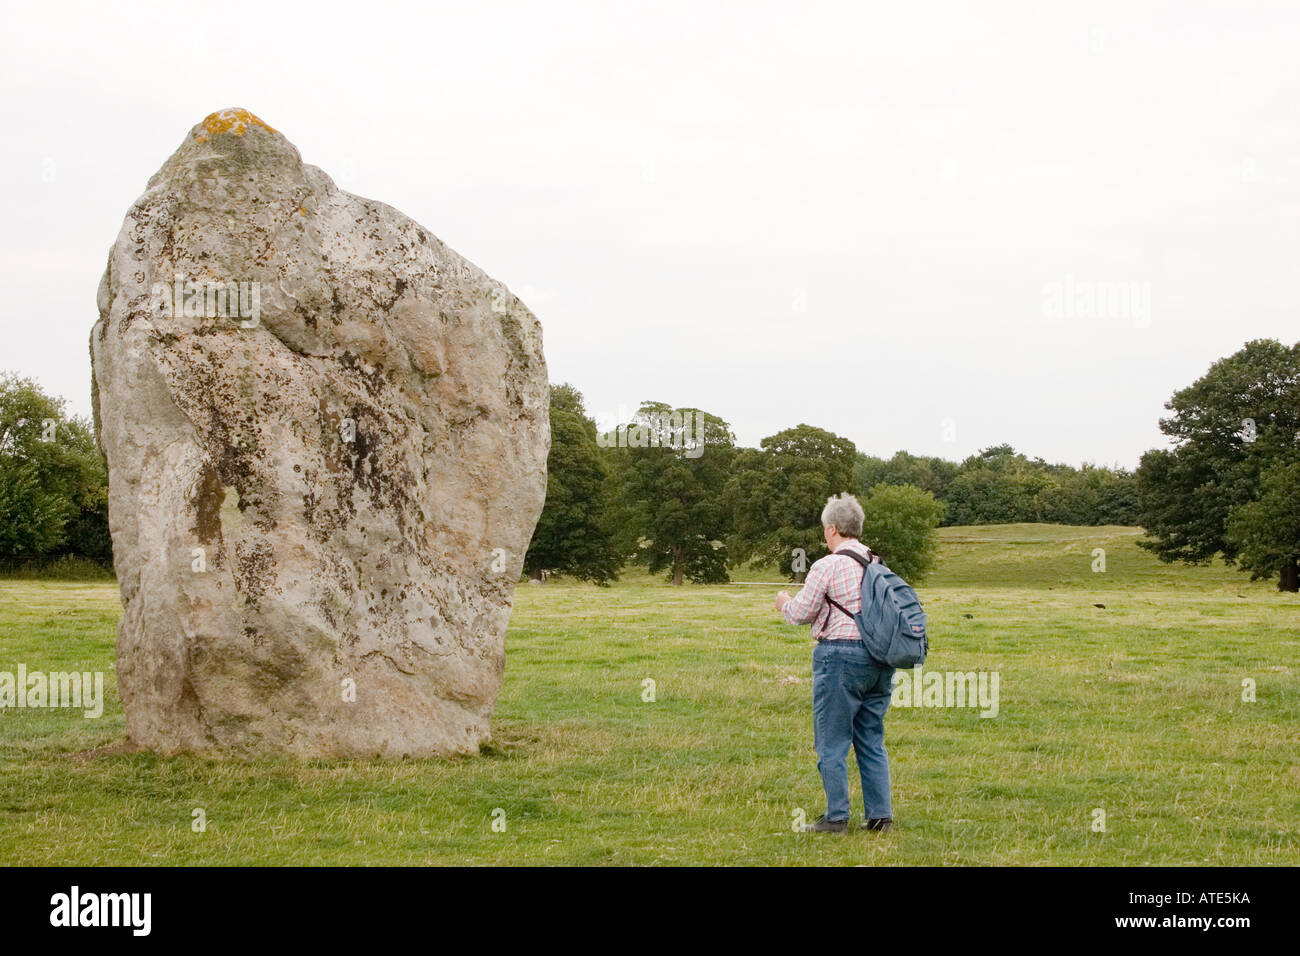 Visitor dowsing a stone in the Avebury circle - Stock Image